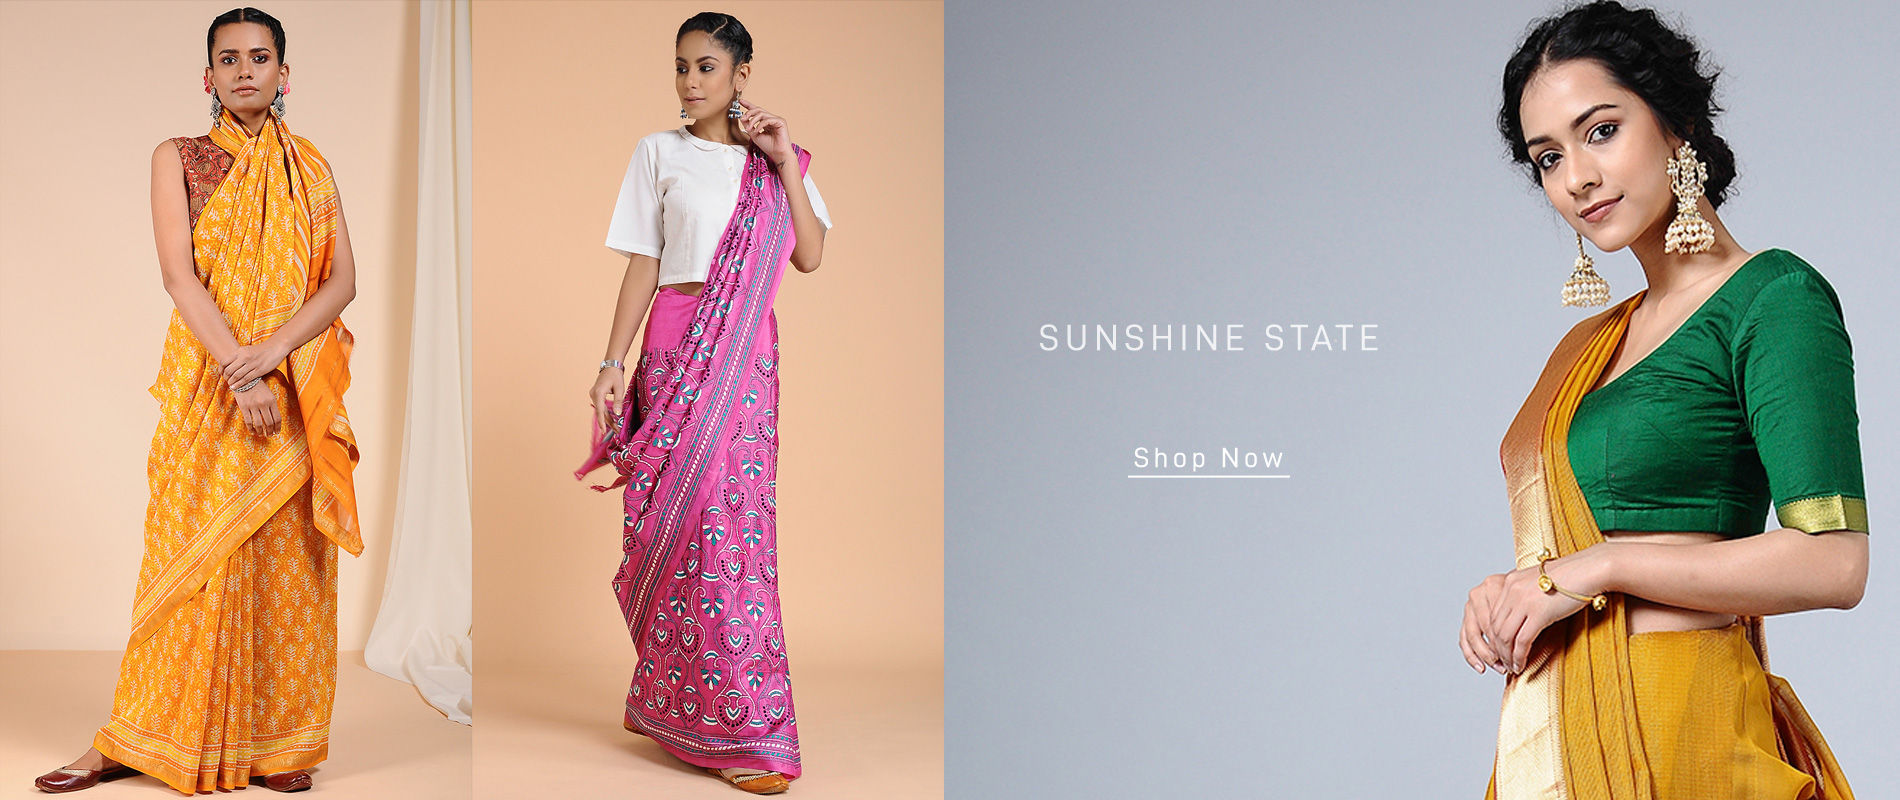 Jaypore com: Curated Online Shop for Handpicked Products, Vintage